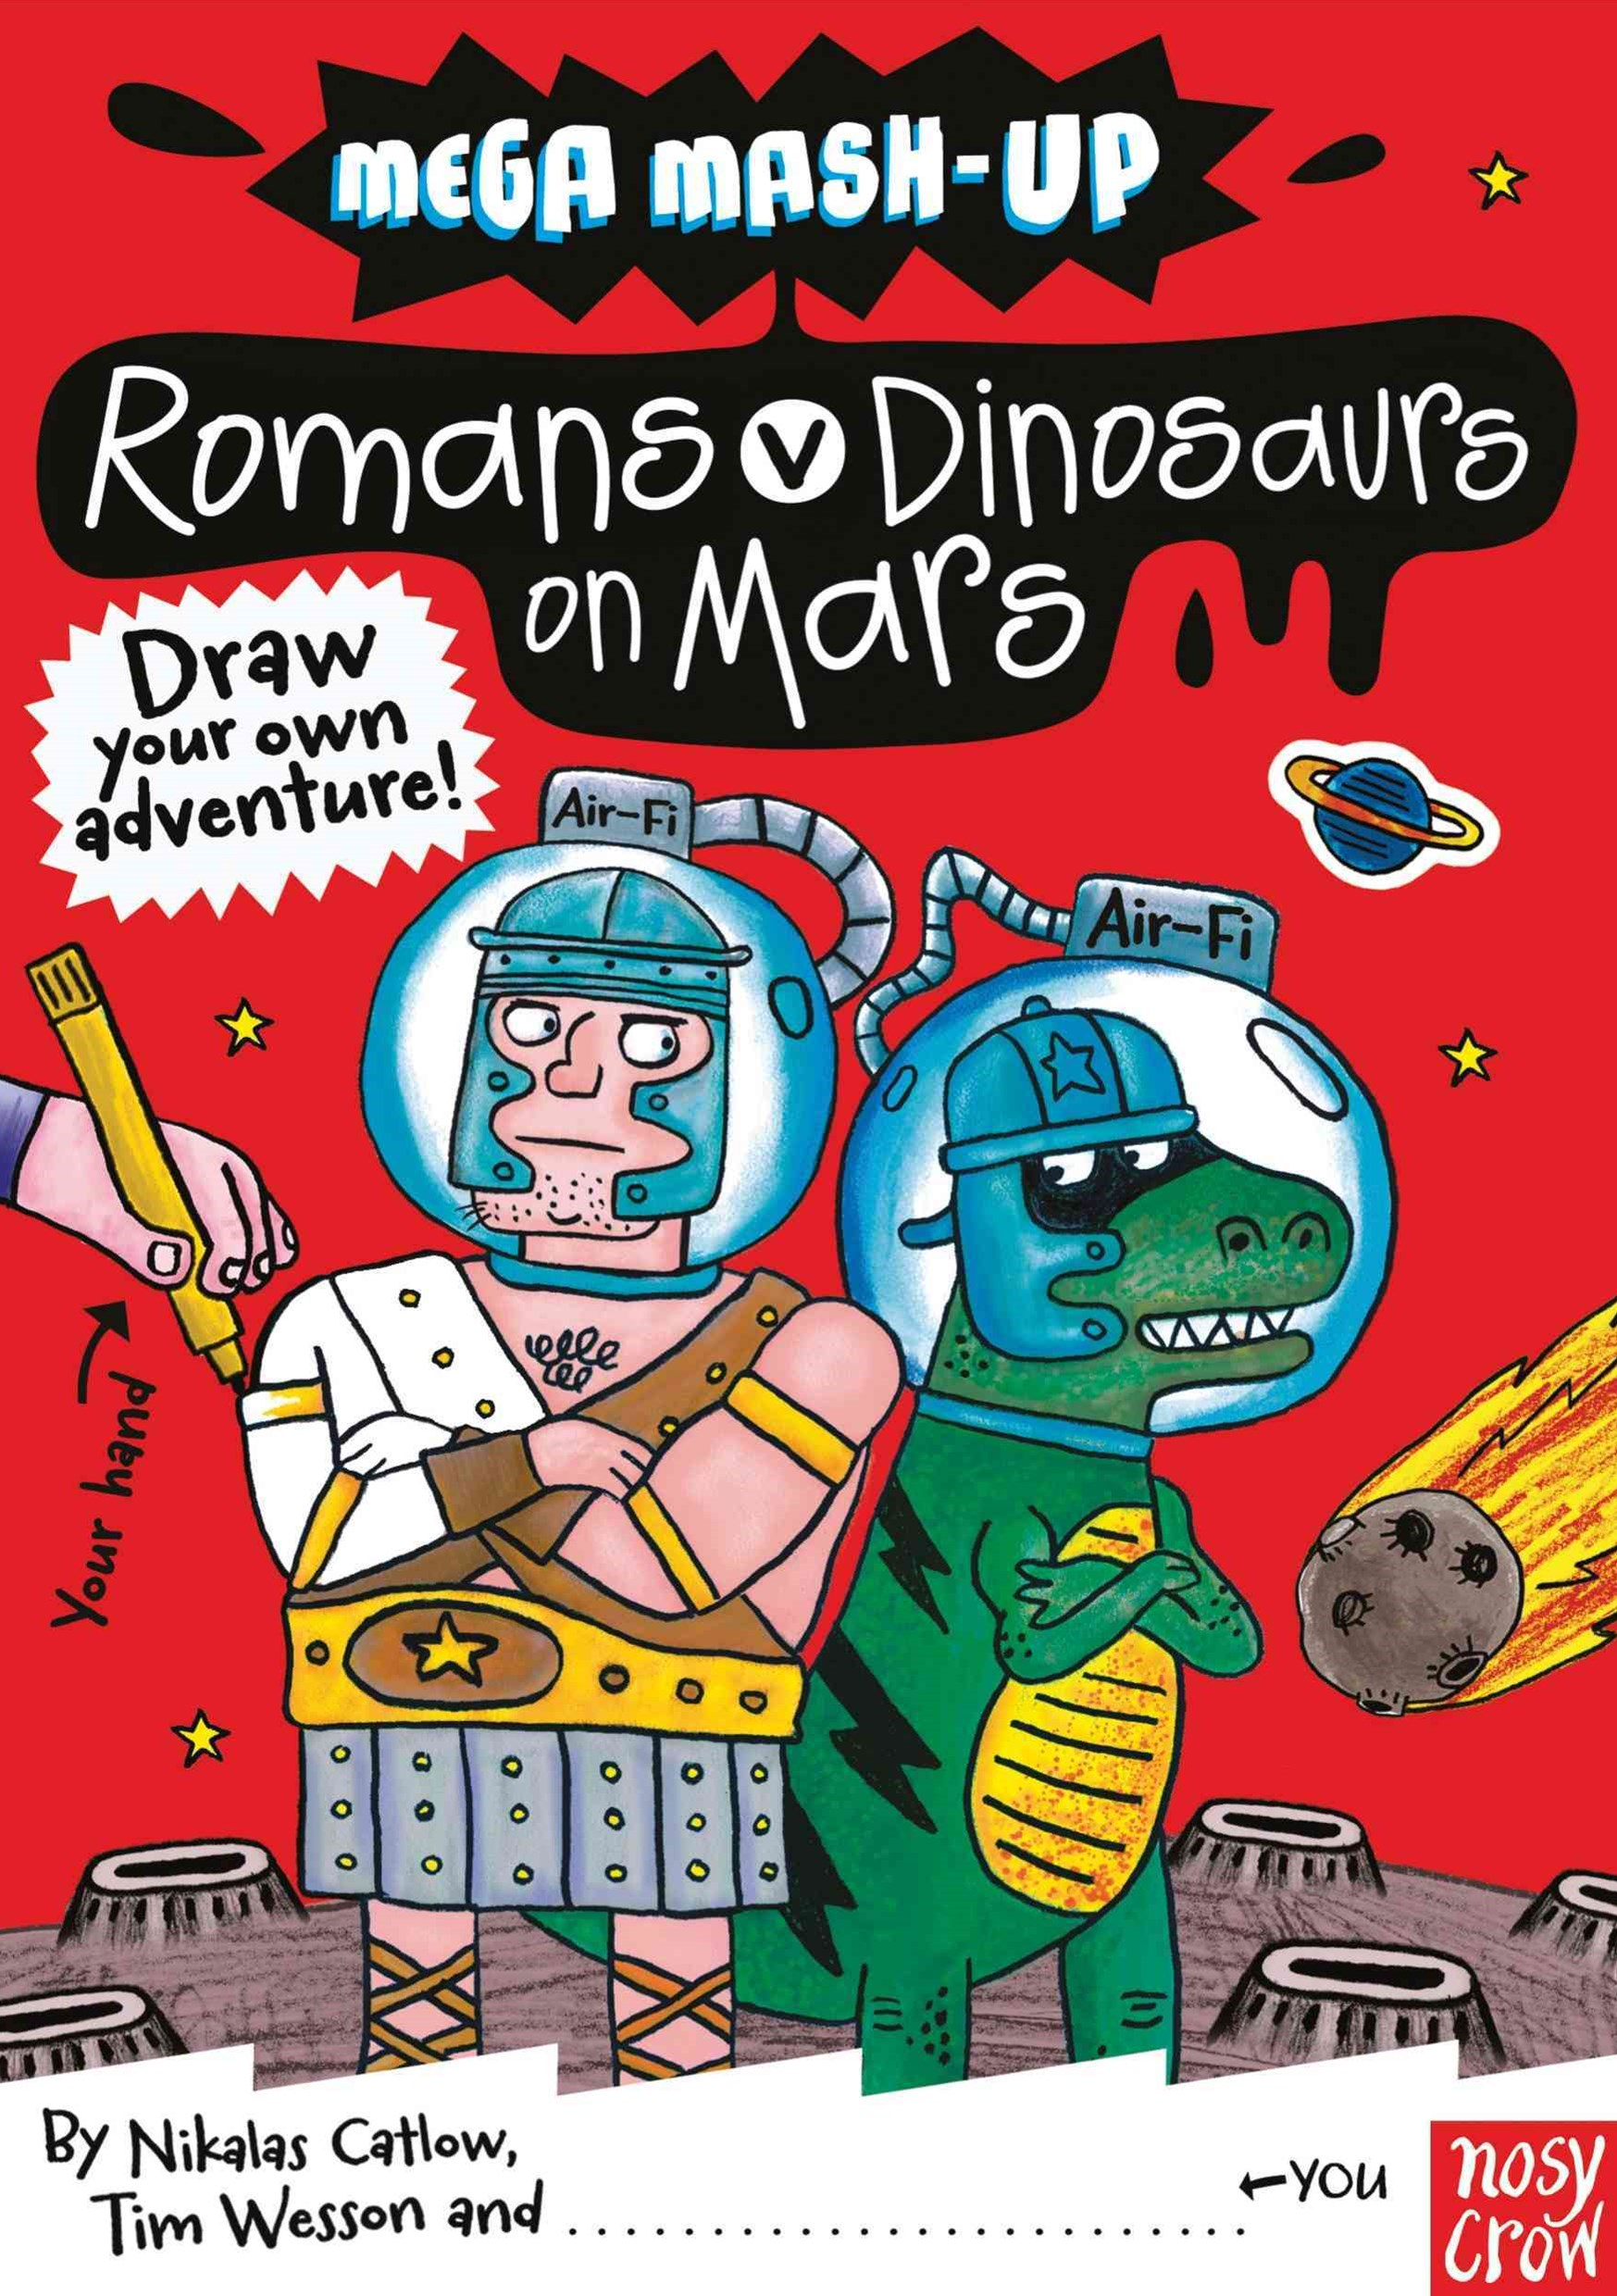 Romans vs. Dinosaurs on Mars